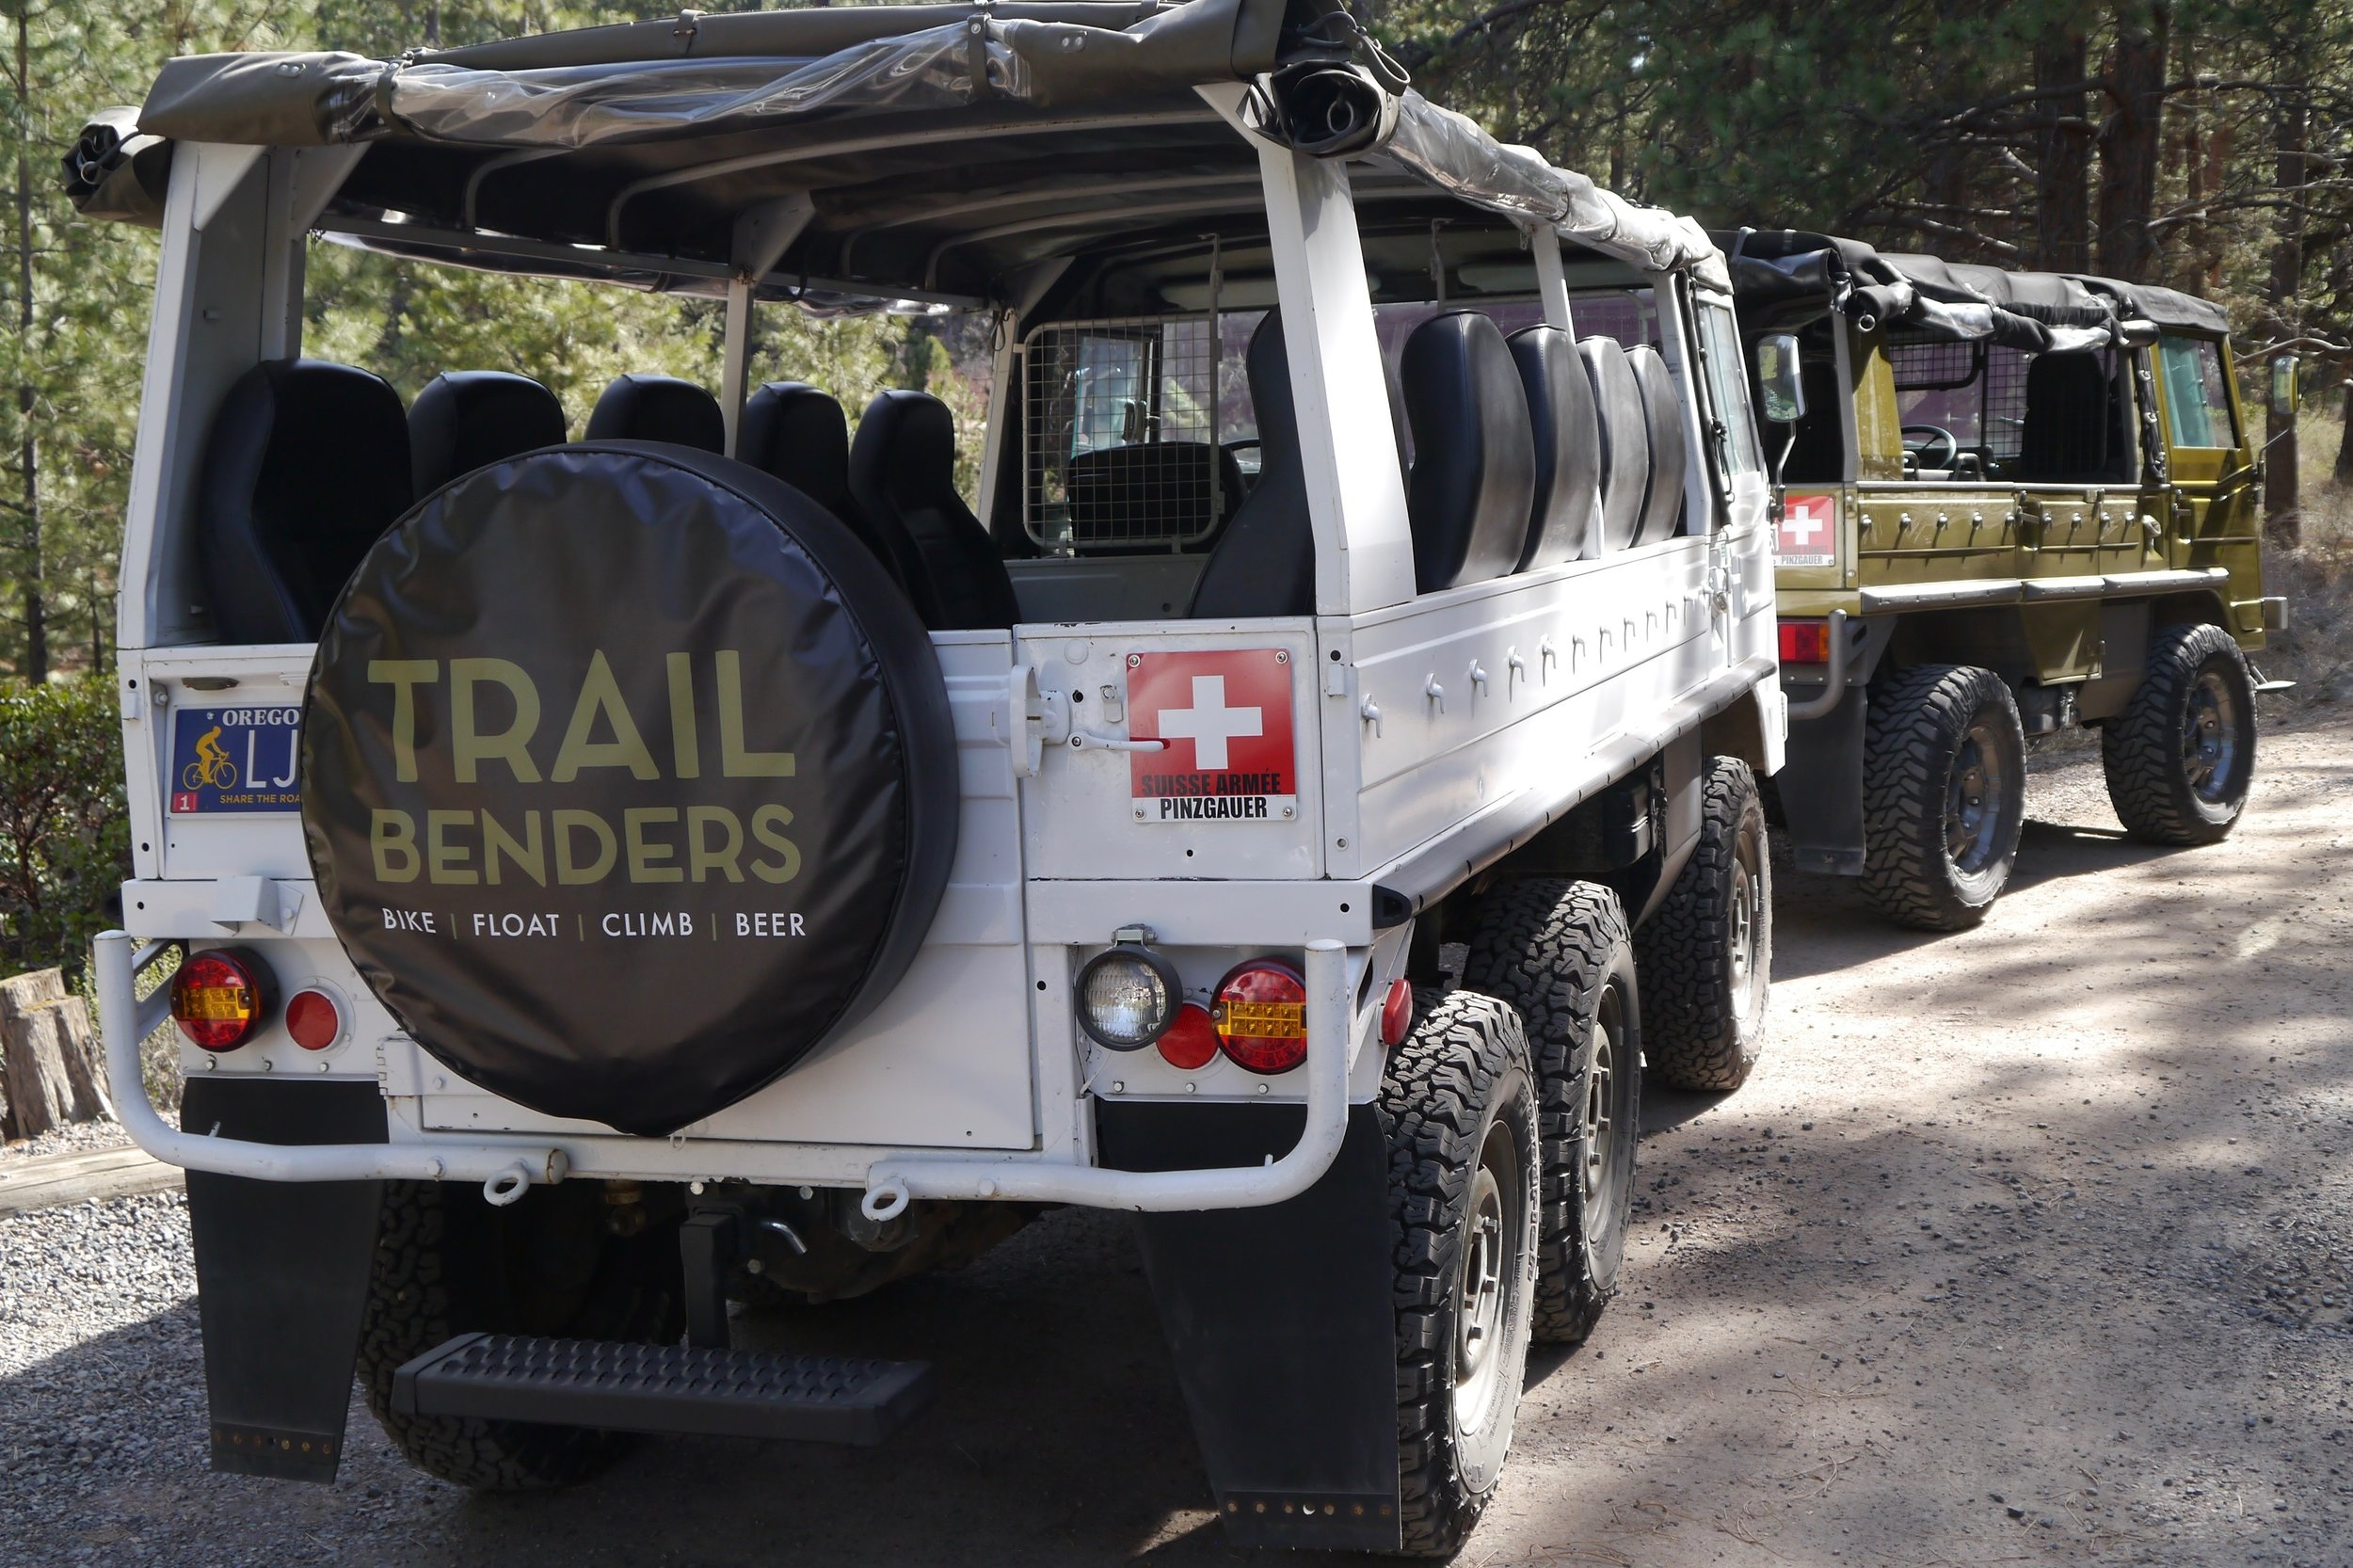 Get picked up. - Select one of our designated meeting points or we can pick you up within 2 miles of downtown Bend. All transportation is provided in a Pinzgauer Swiss Army troop transport vehicle. We have 4x4 and 6x6 models depending on the group size.